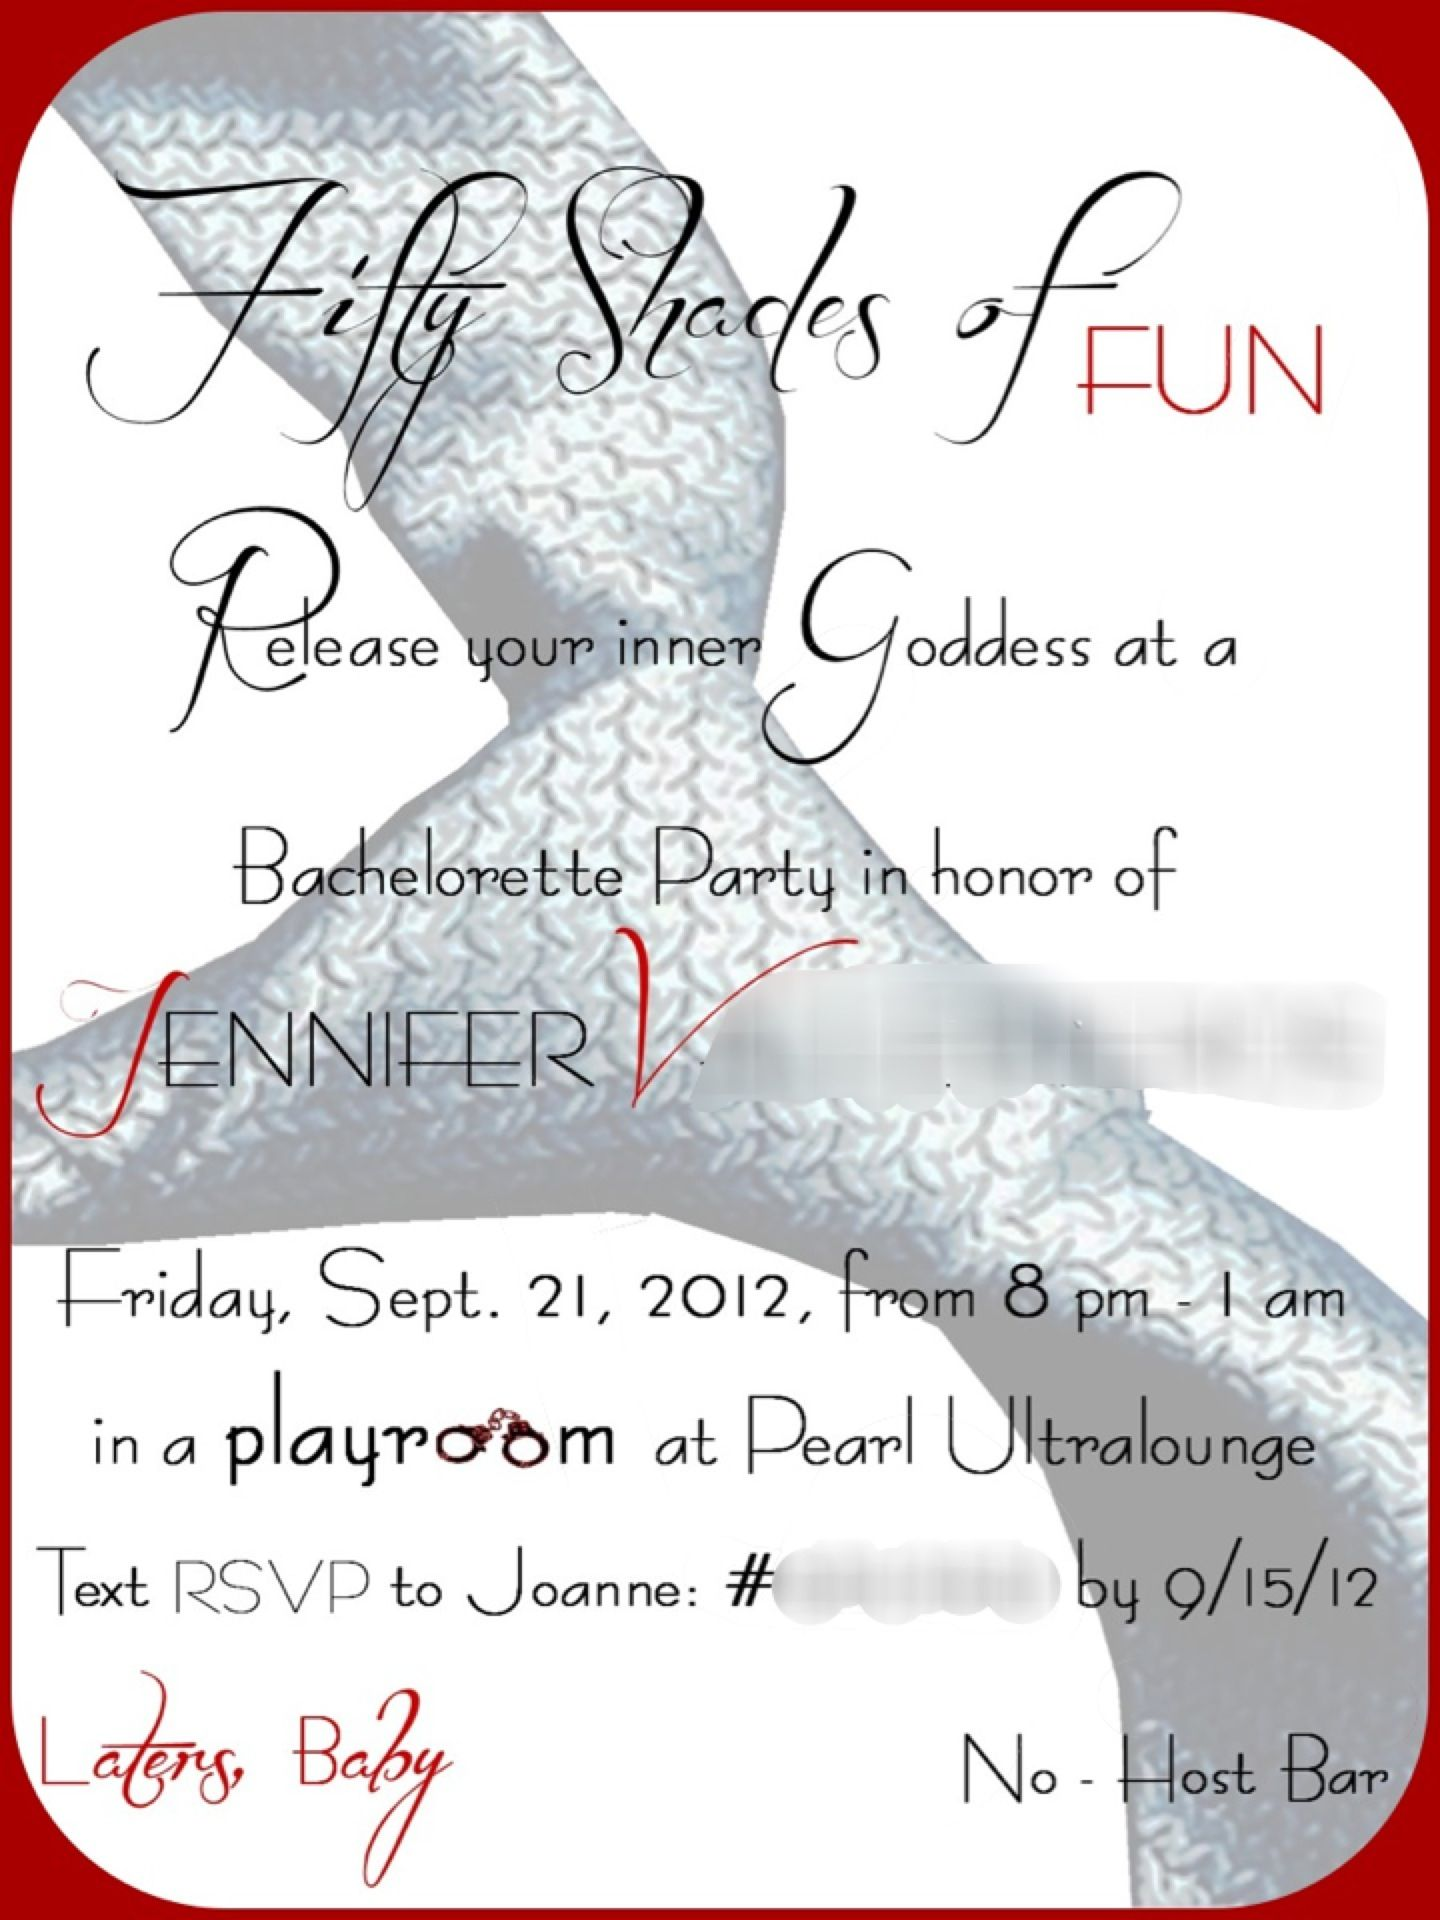 Fifty shades themed bachelorette party invitation. | Party ...